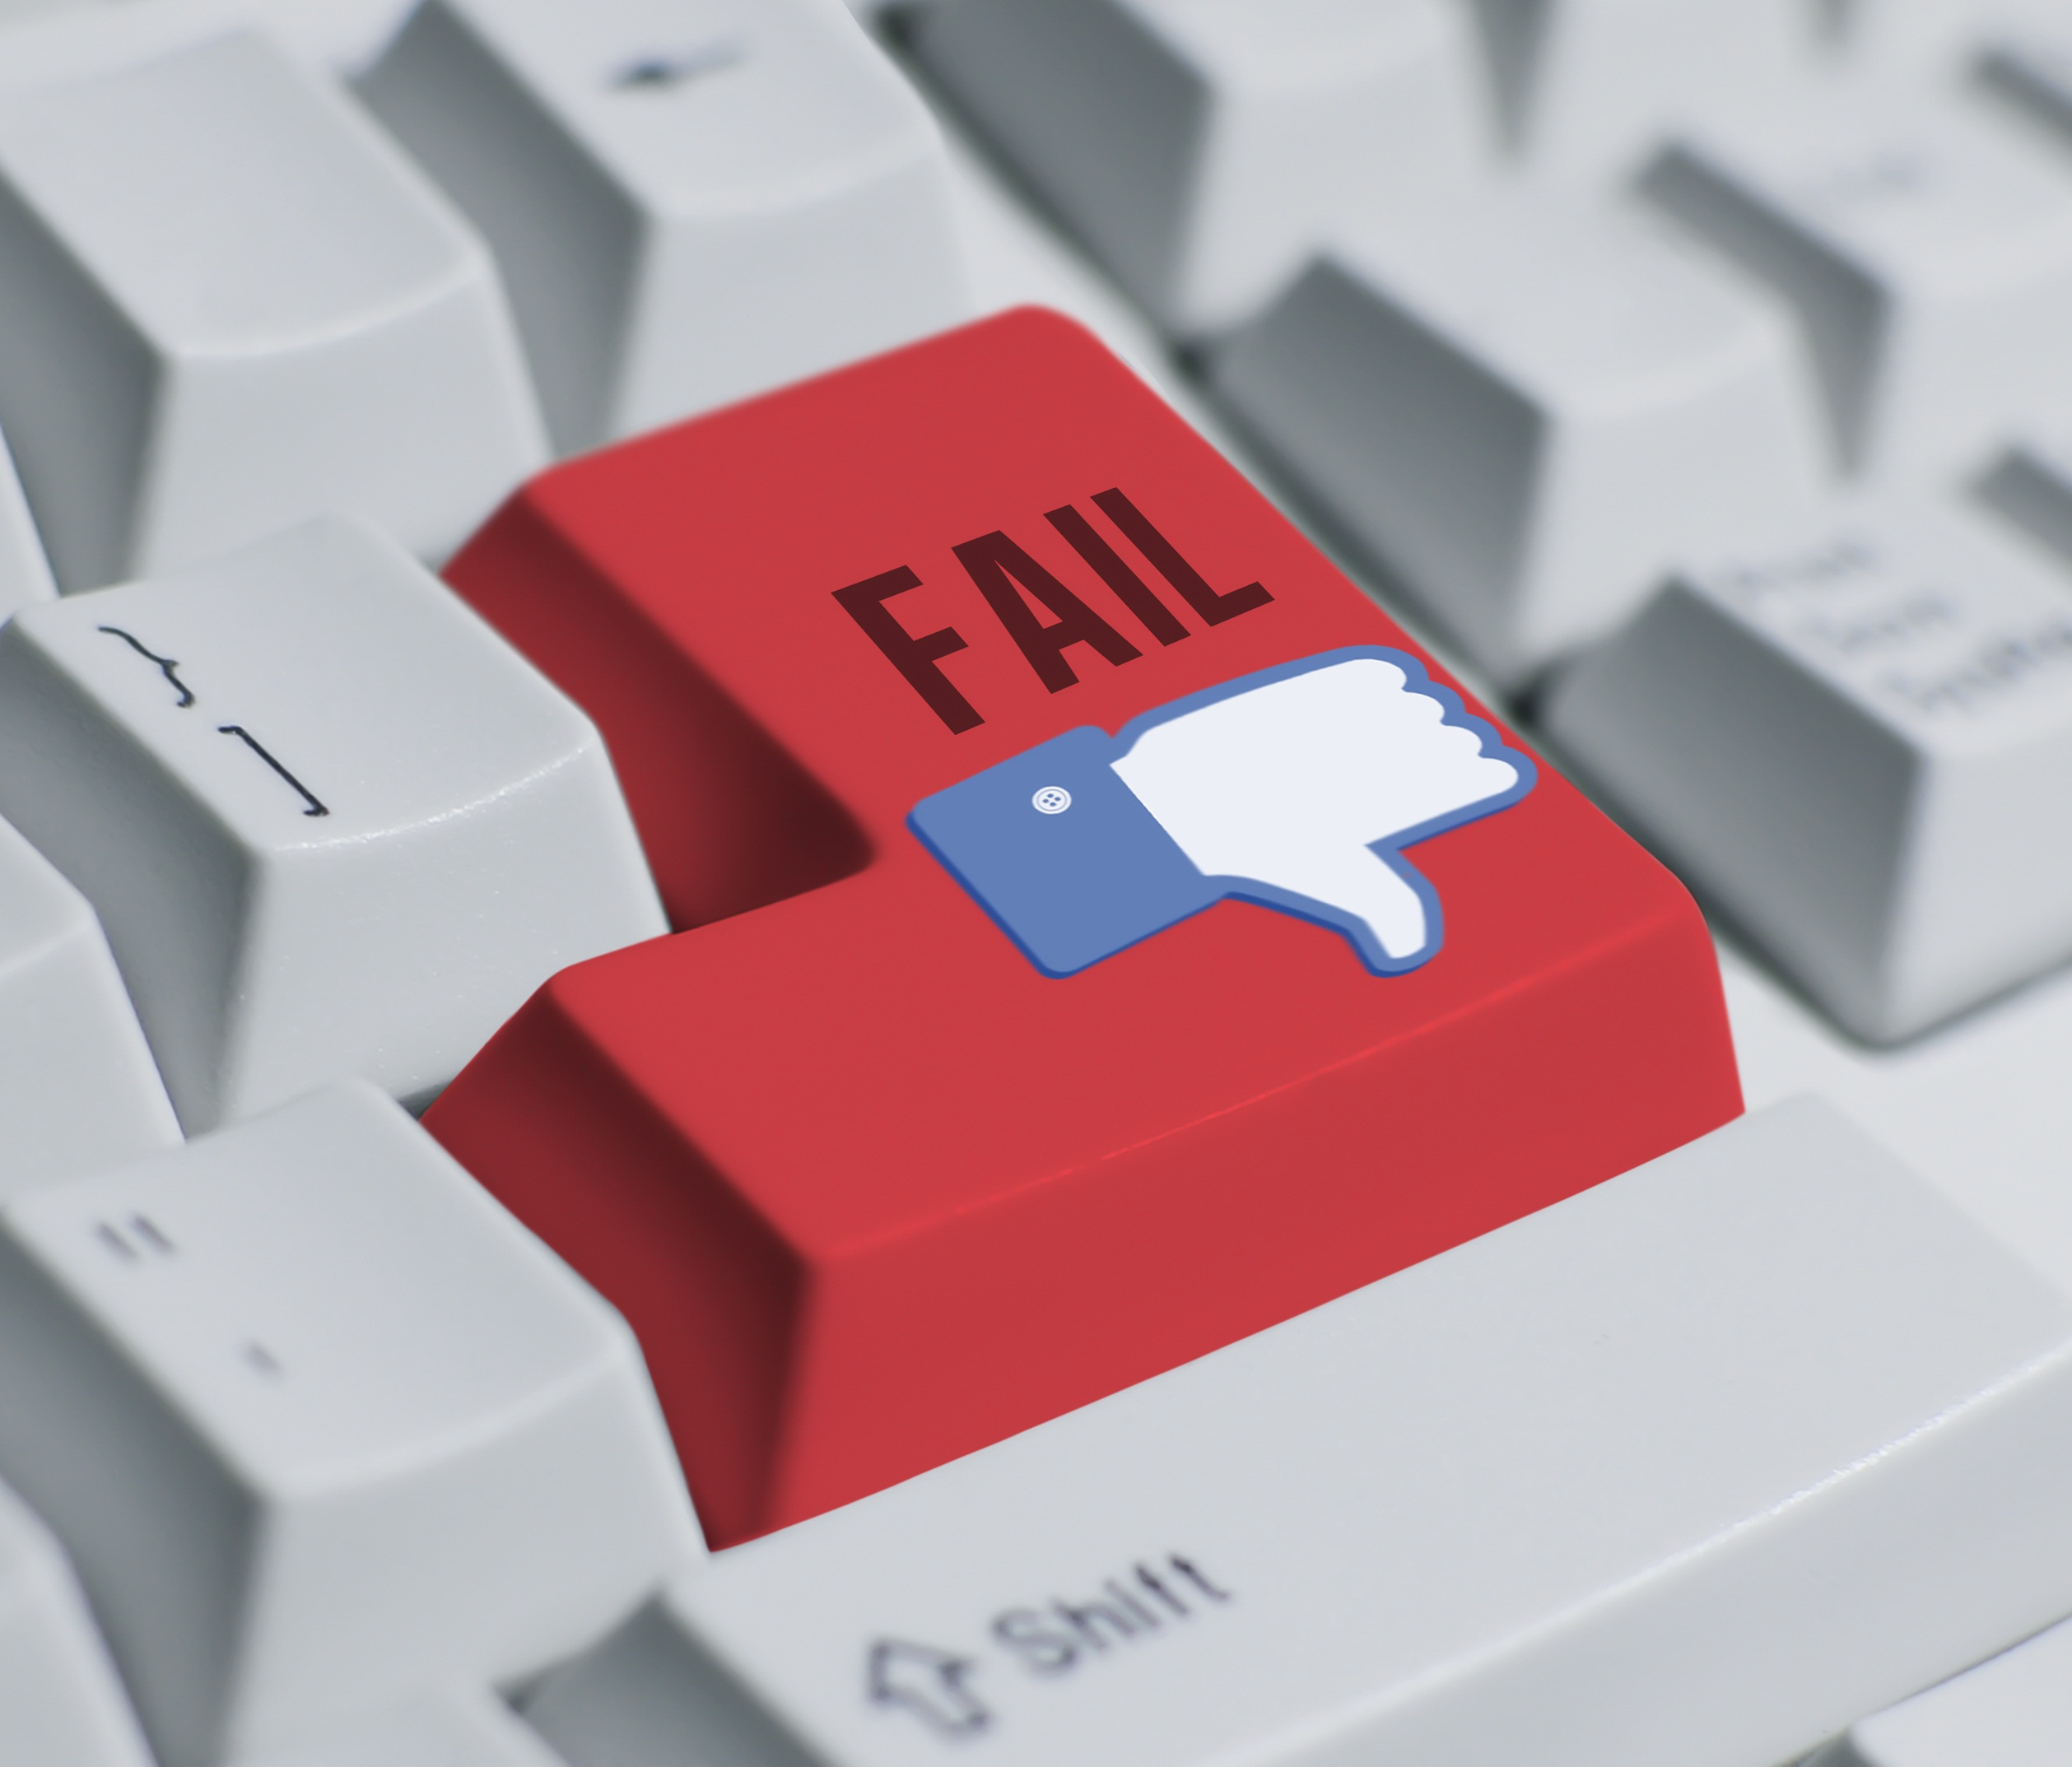 Fotolia: You Fail!---keyboard © gow27 #38082186